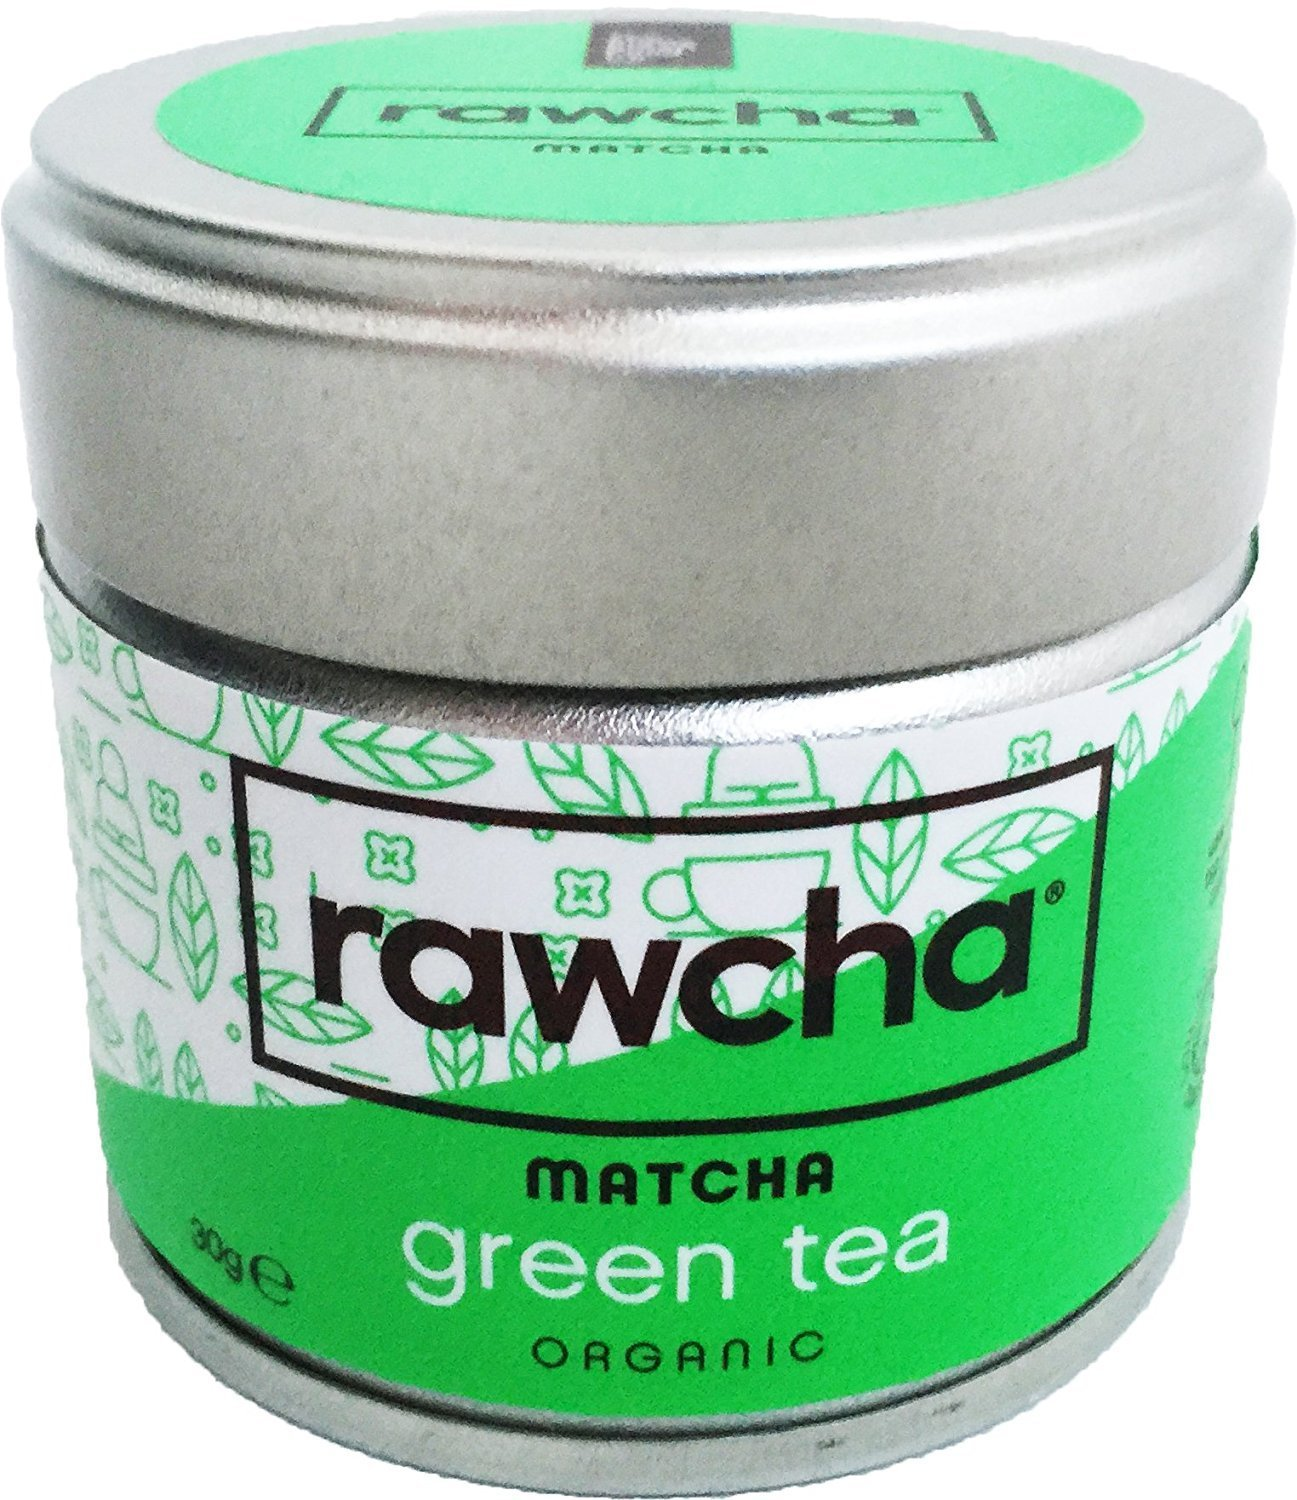 Rawcha matcha green tea